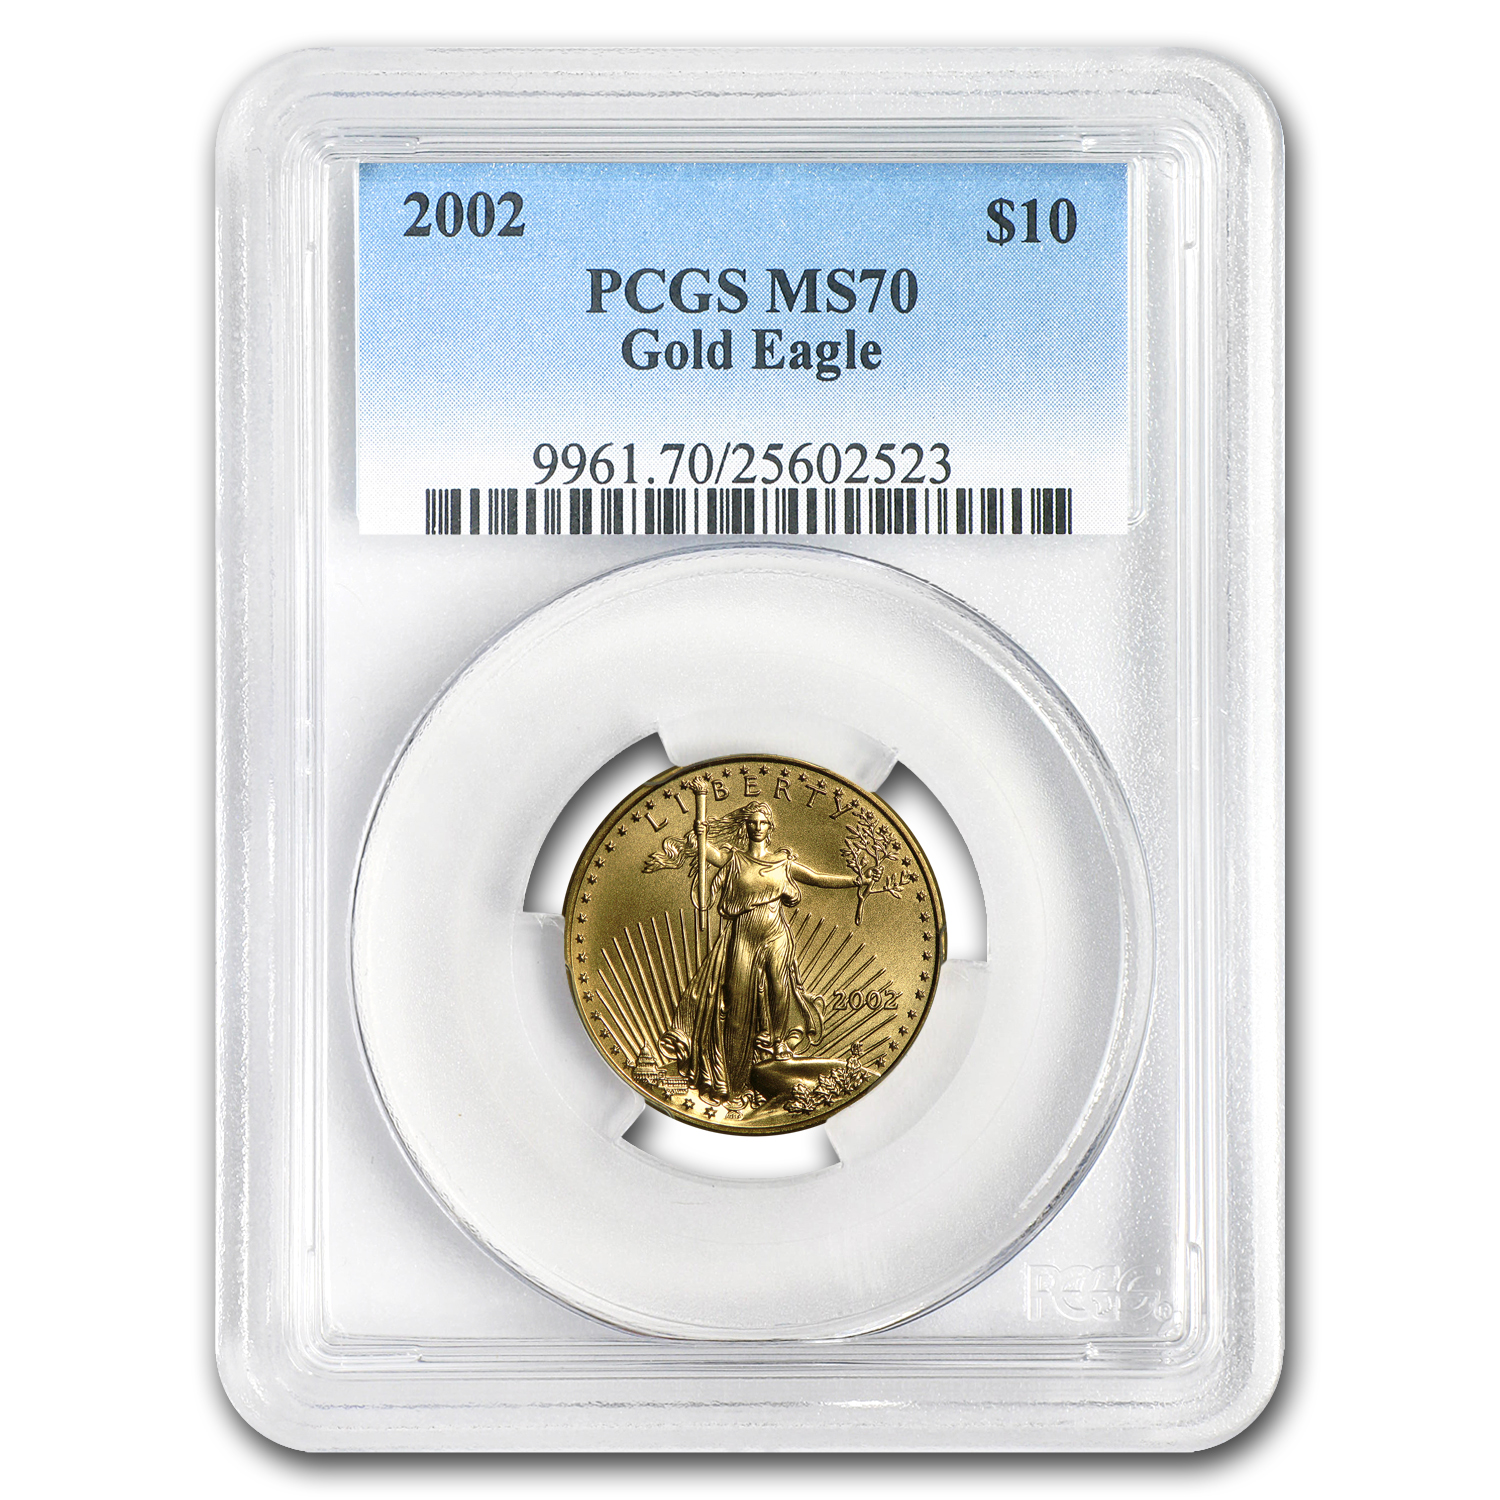 2002 1/4 oz Gold American Eagle MS-70 PCGS (Registry Set)